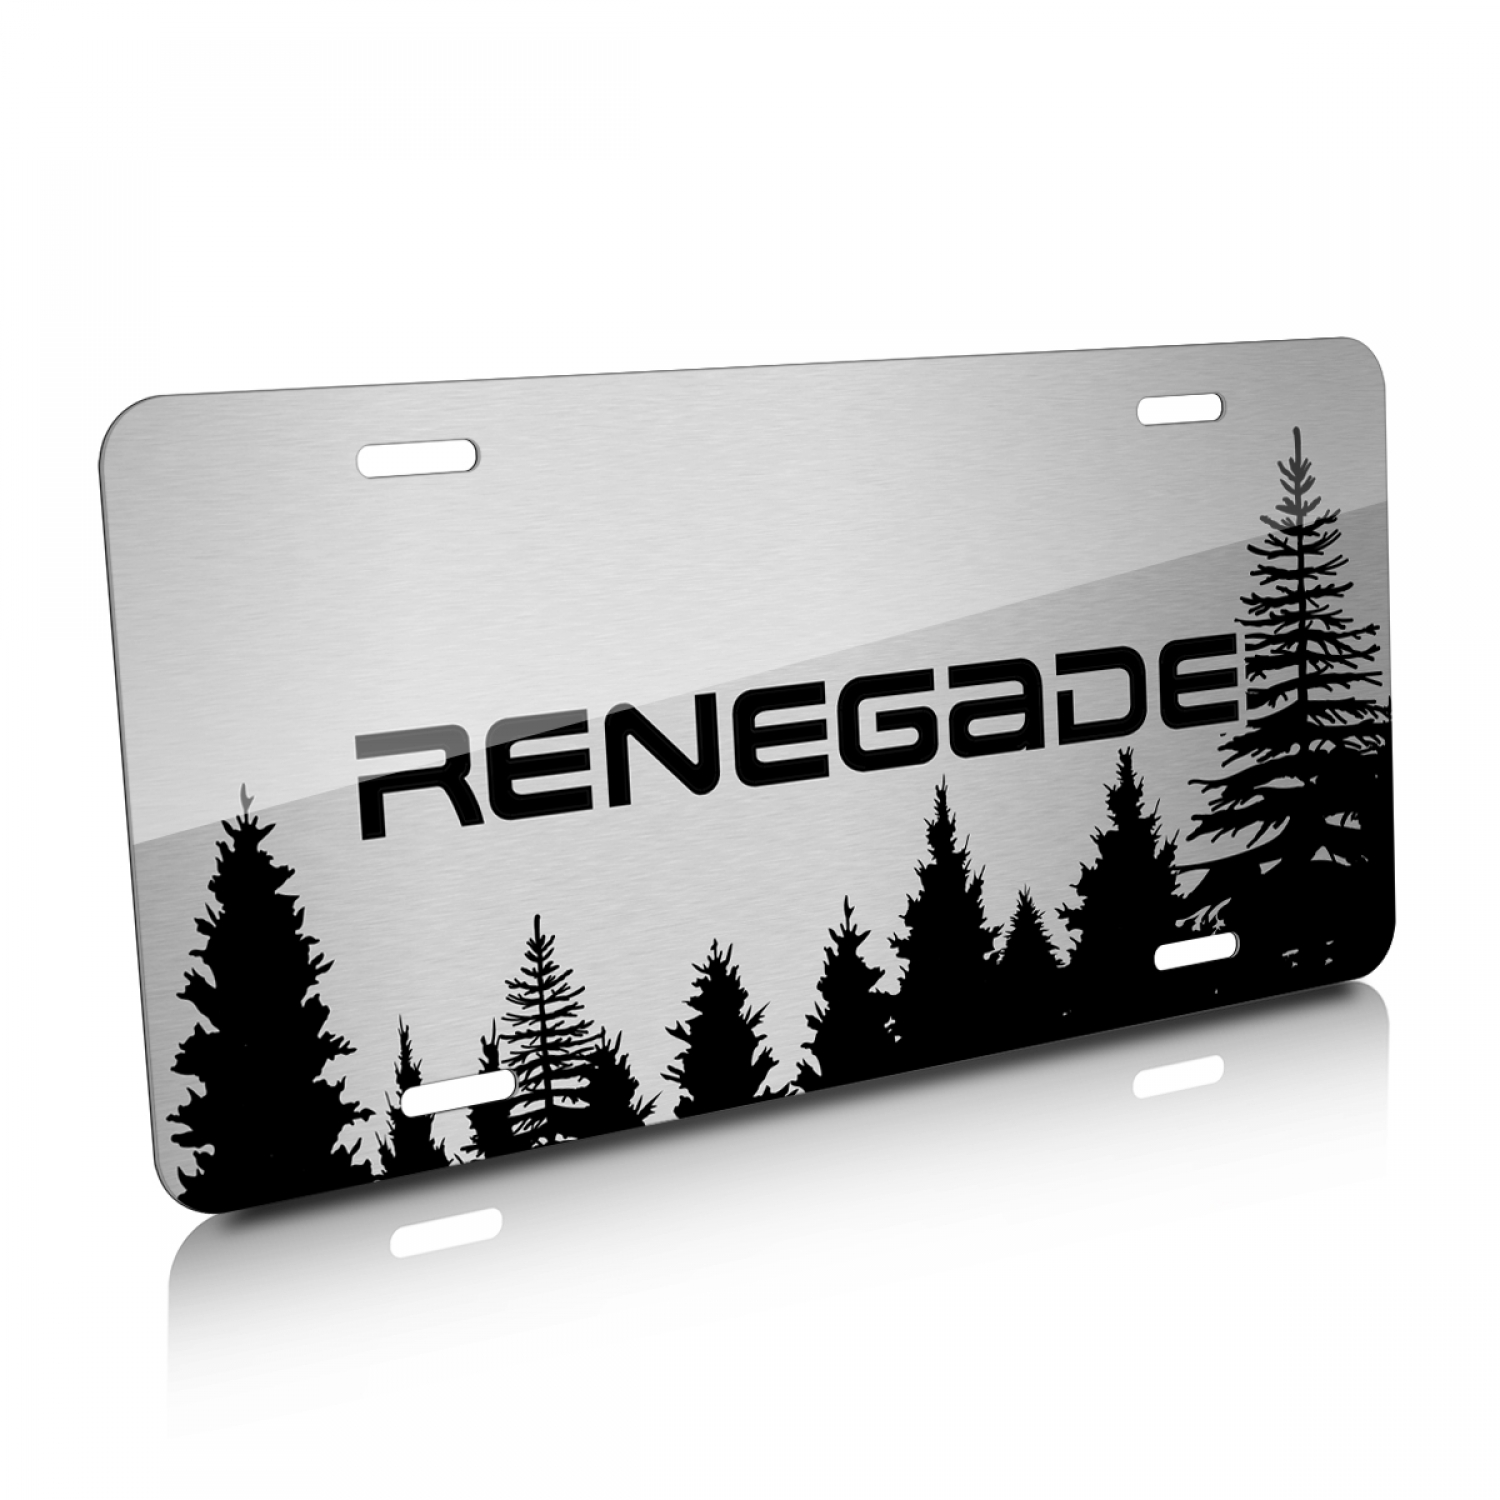 Jeep Renegade Forrest Sillhouette Graphic Brush Aluminum License Plate